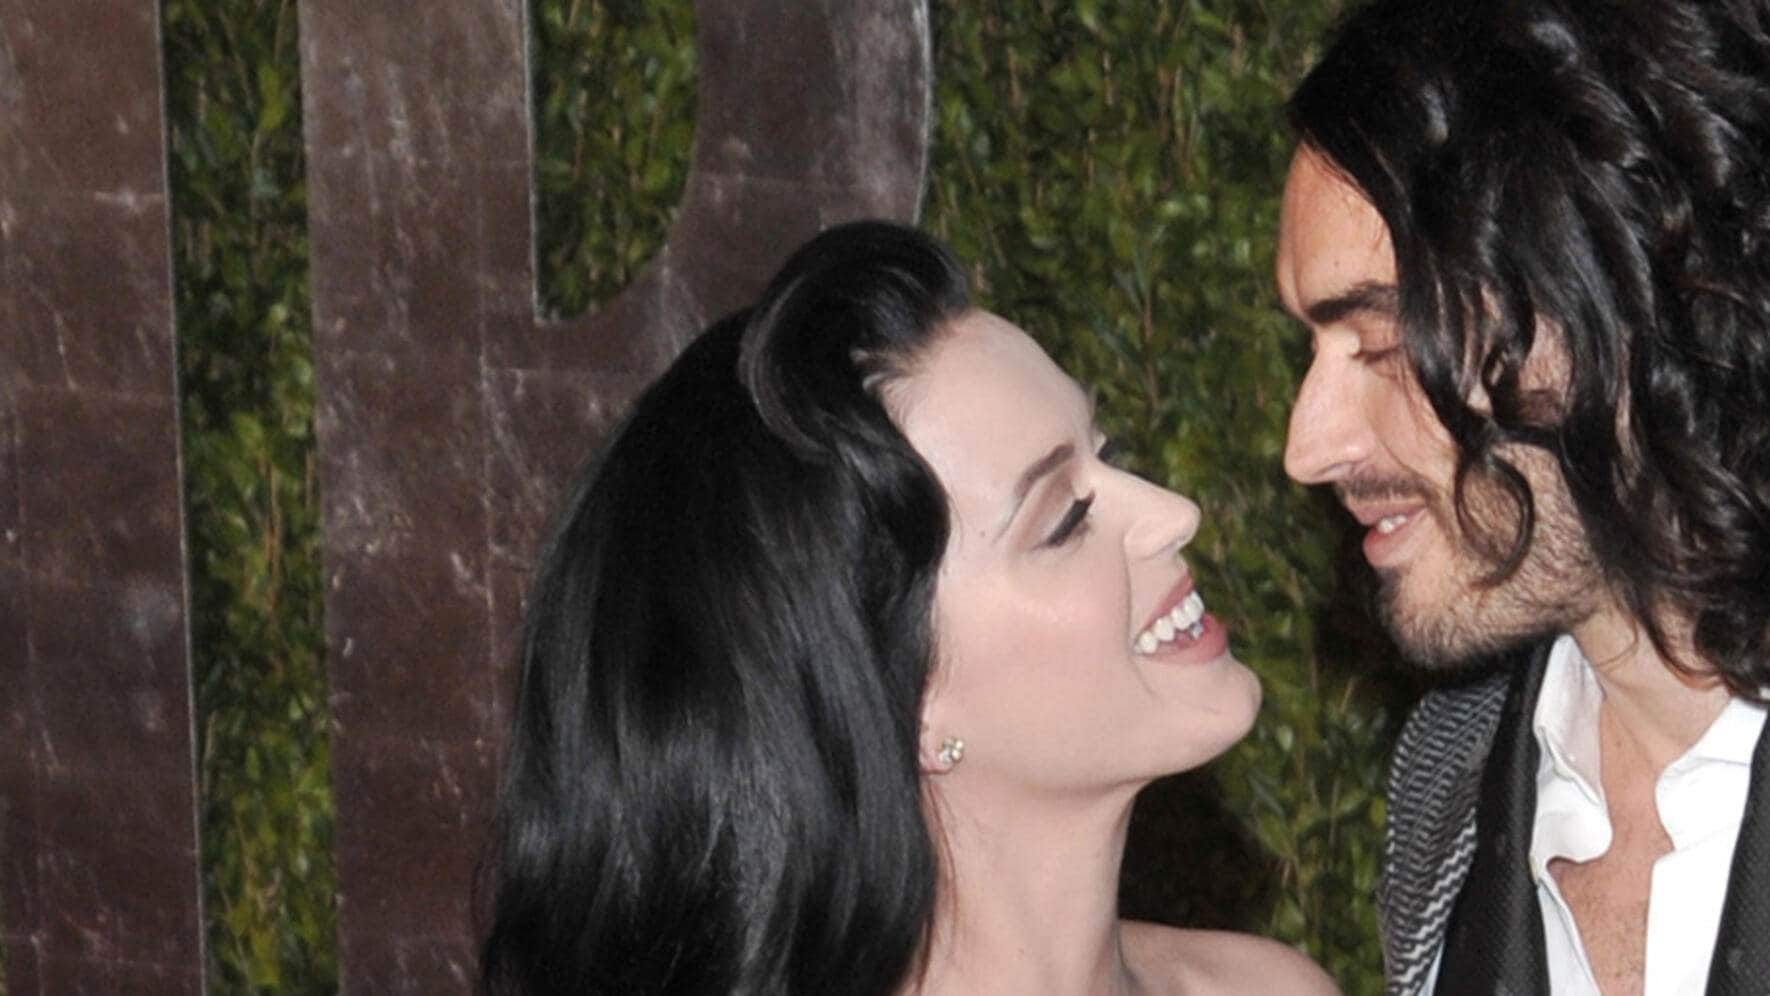 Frontteaser Katy Perry Russell Brand